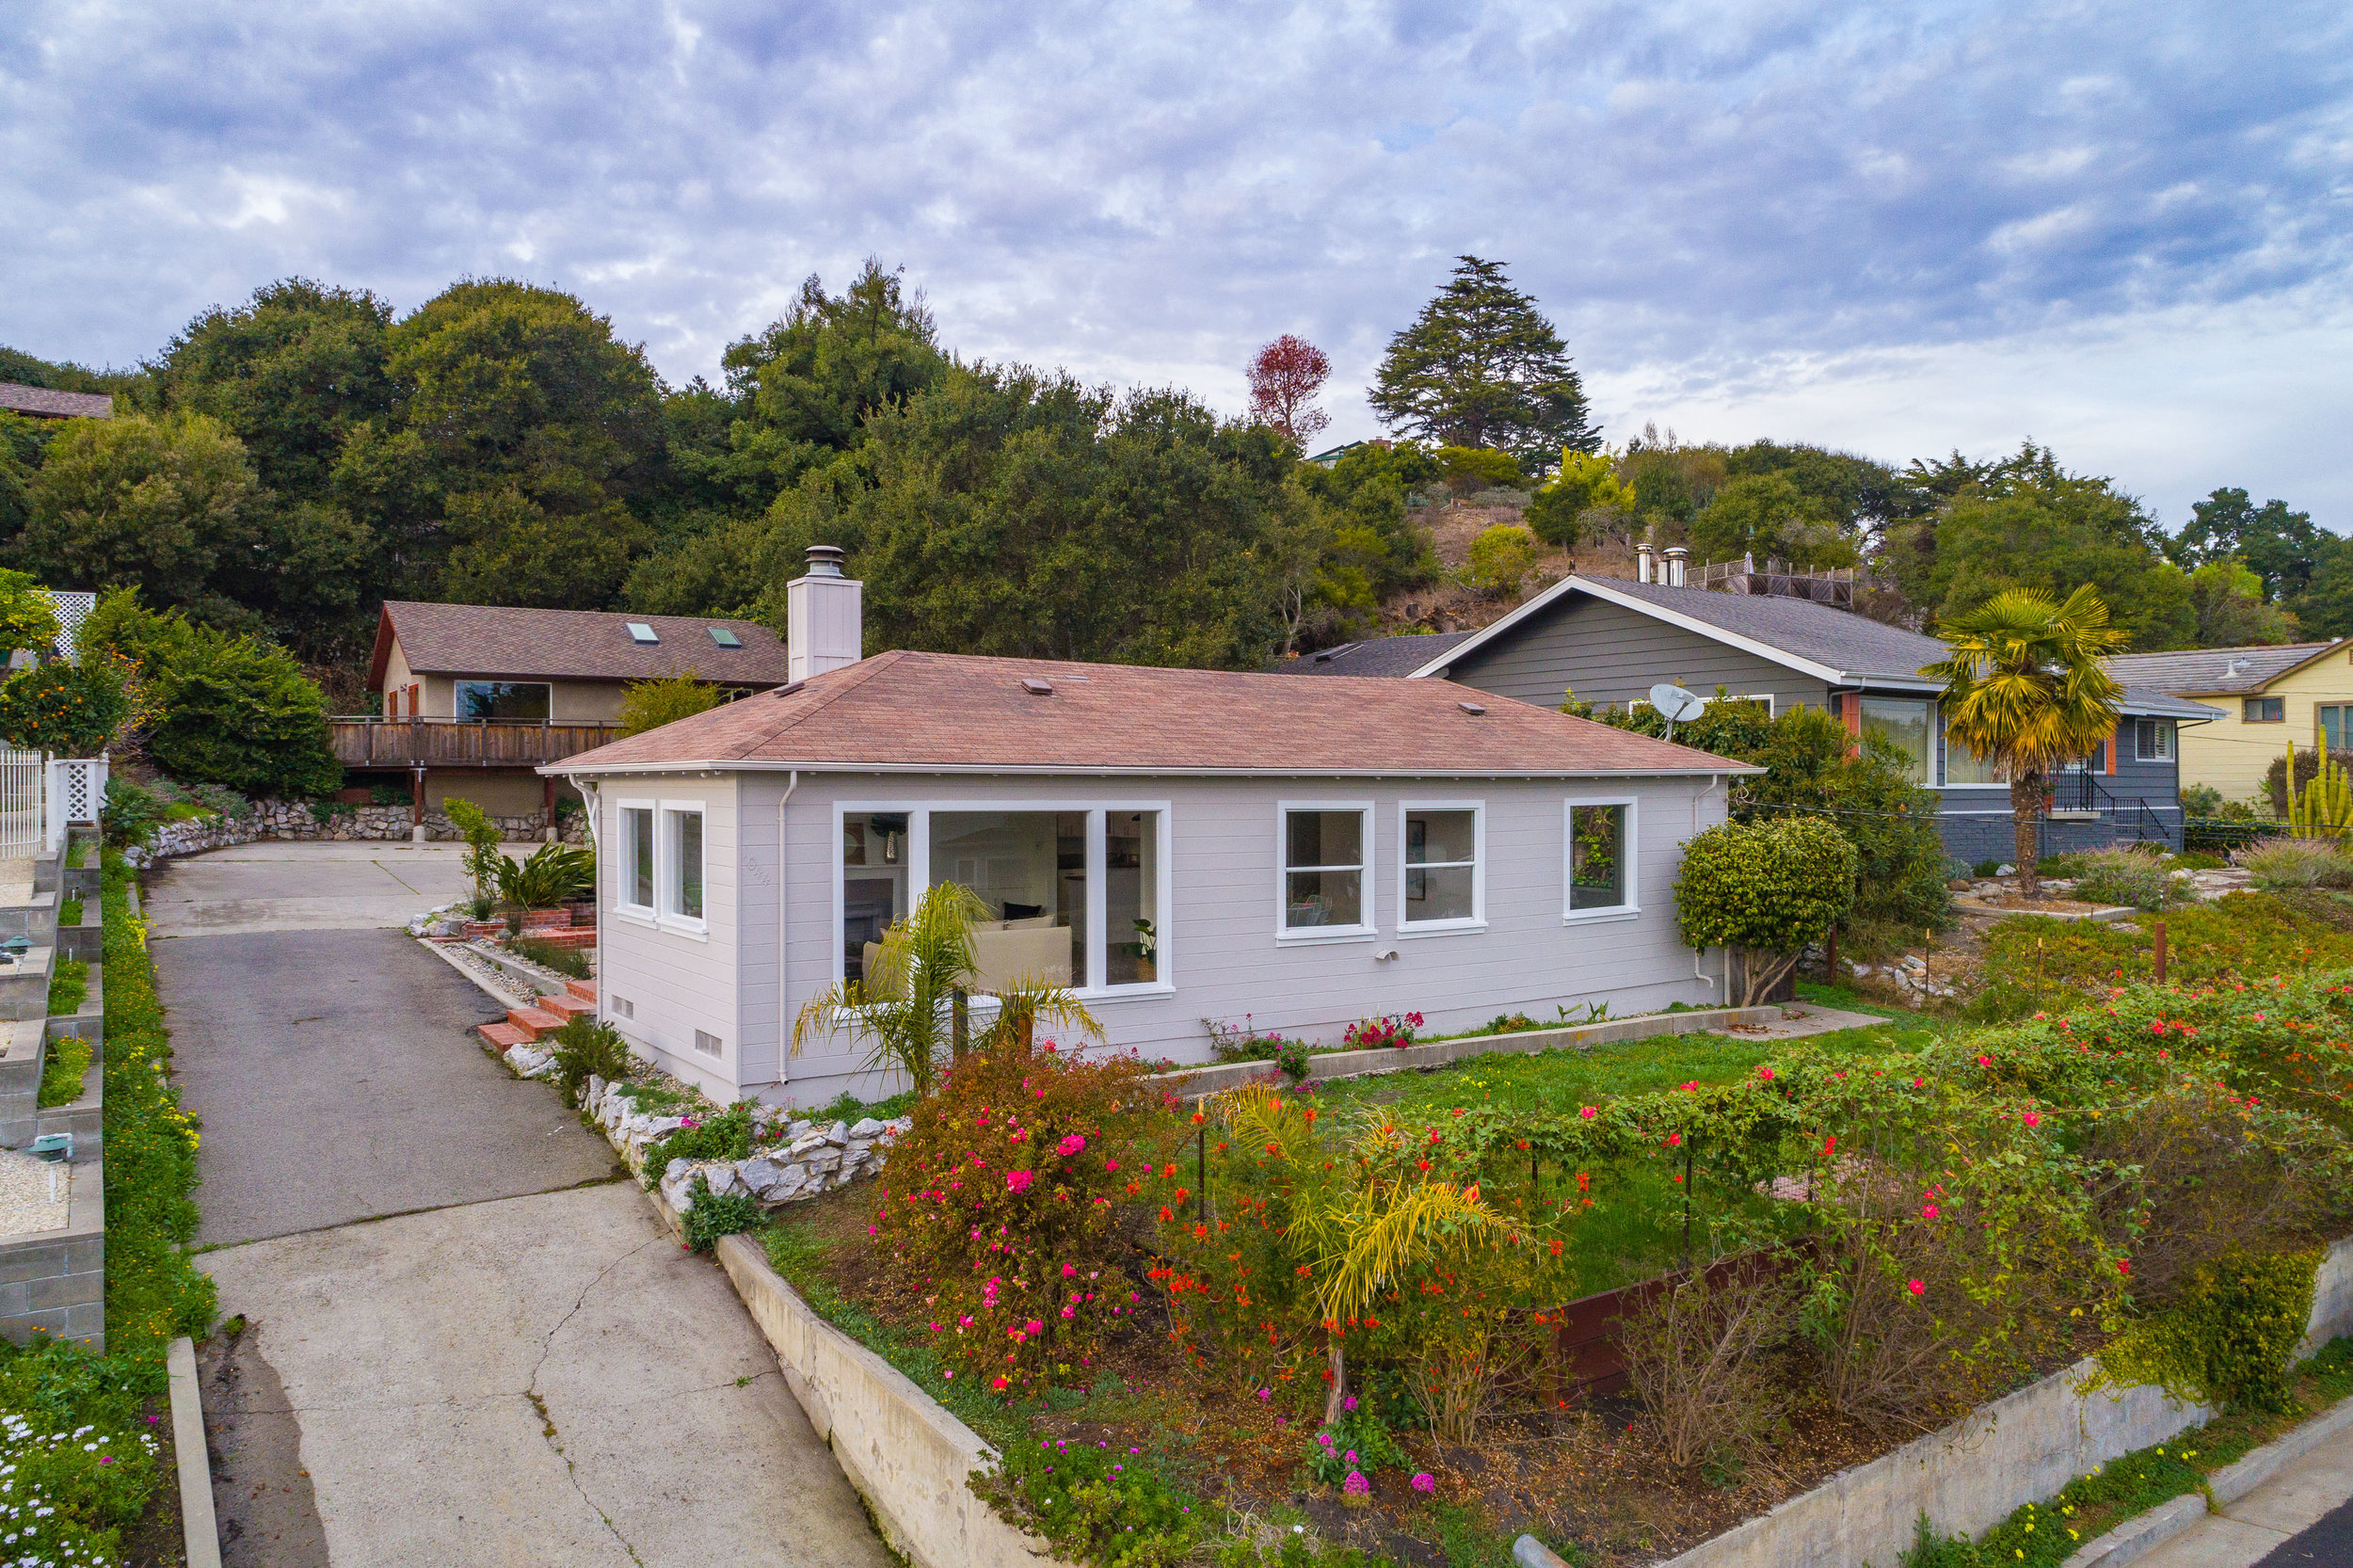 Recently Remodeled 3 Bedroom 2 Bathroom Home with ADU on the Wes